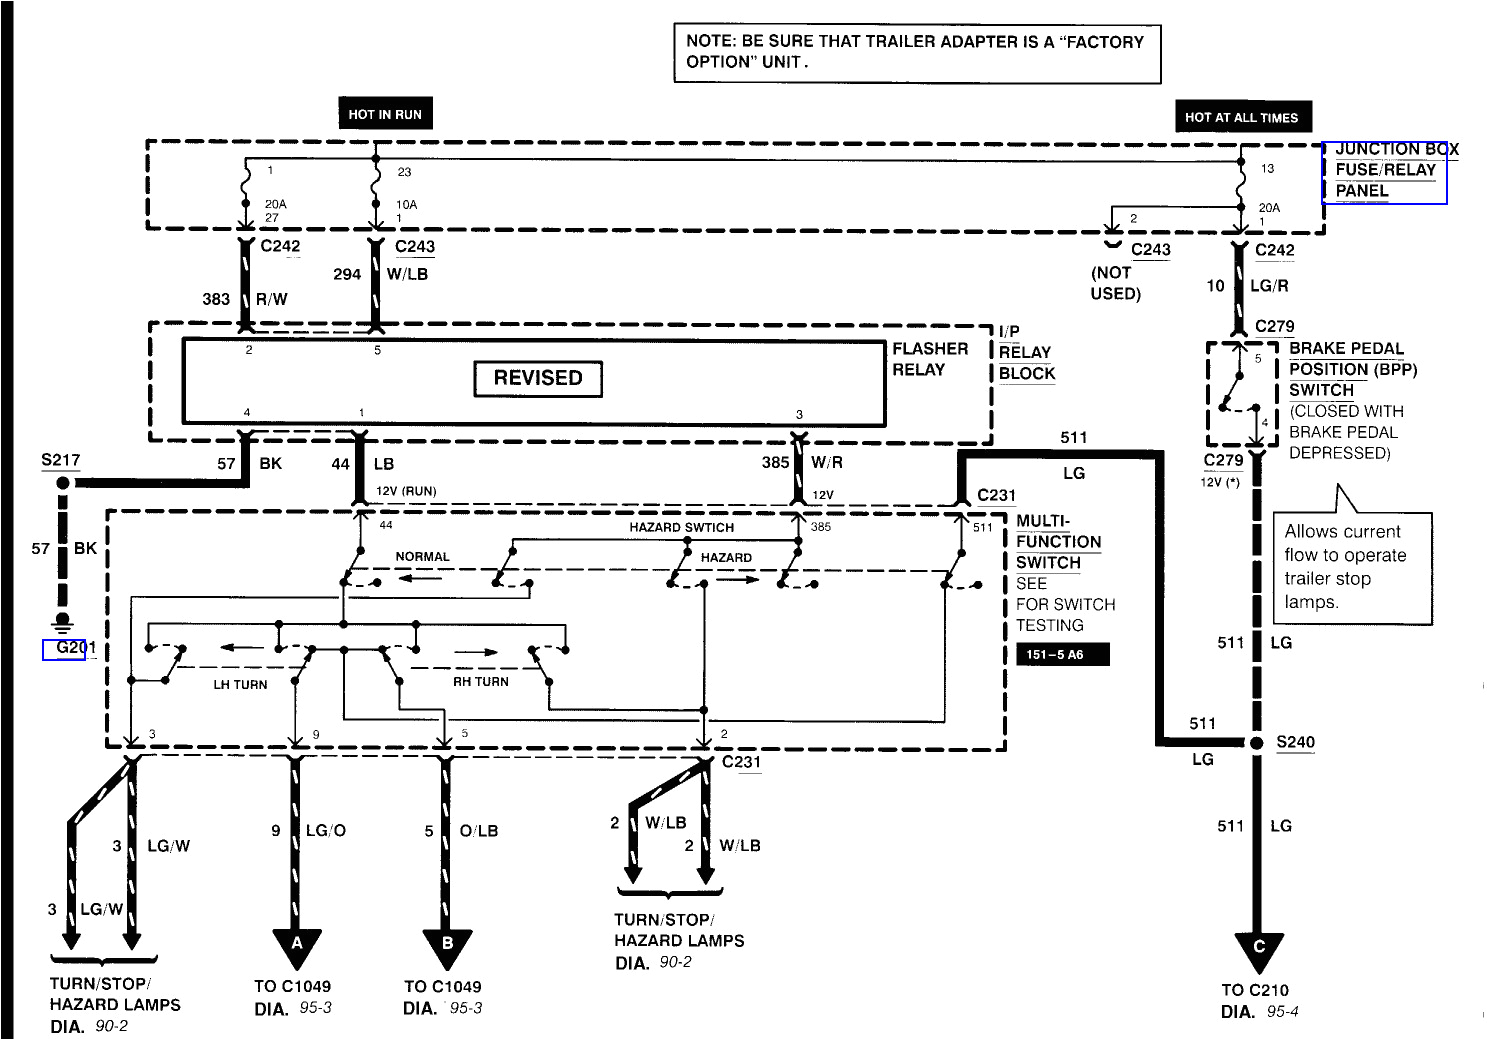 f250 ford wiring diagram wiring diagram centre1971 ford f250 wiring diagram wiring diagramf250 ford wiring diagram